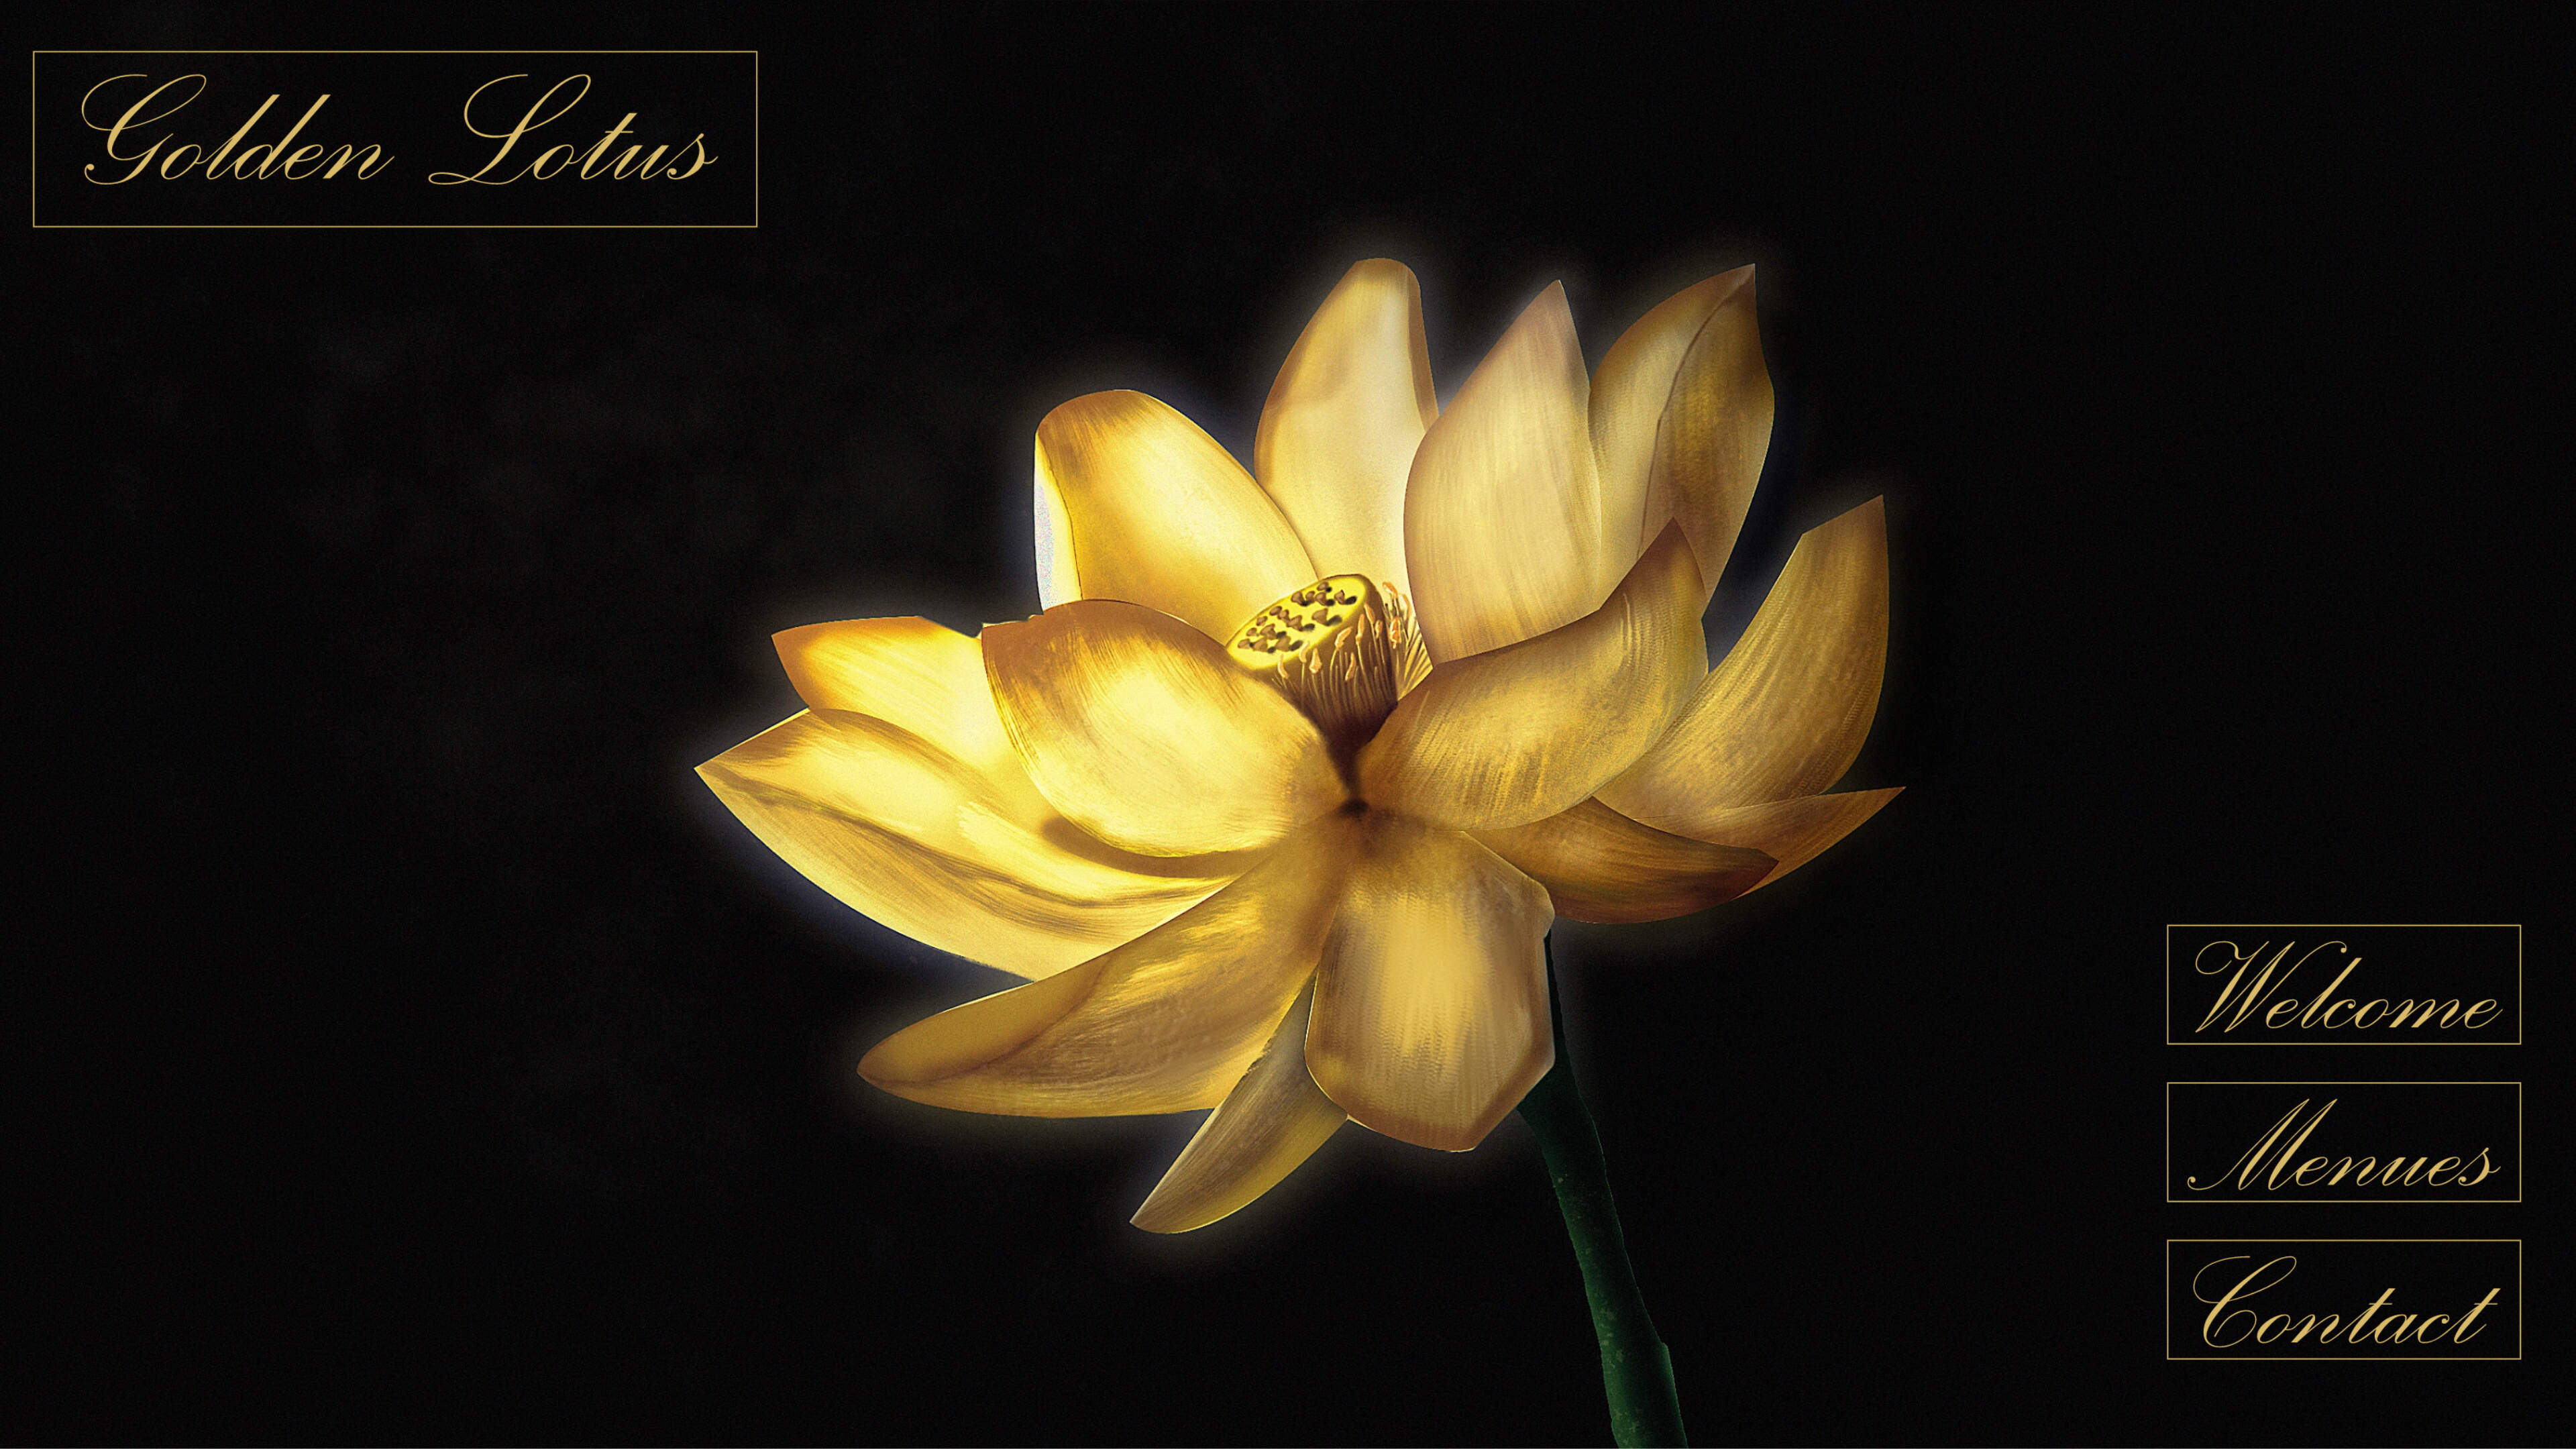 Golden Lotus - Webpage